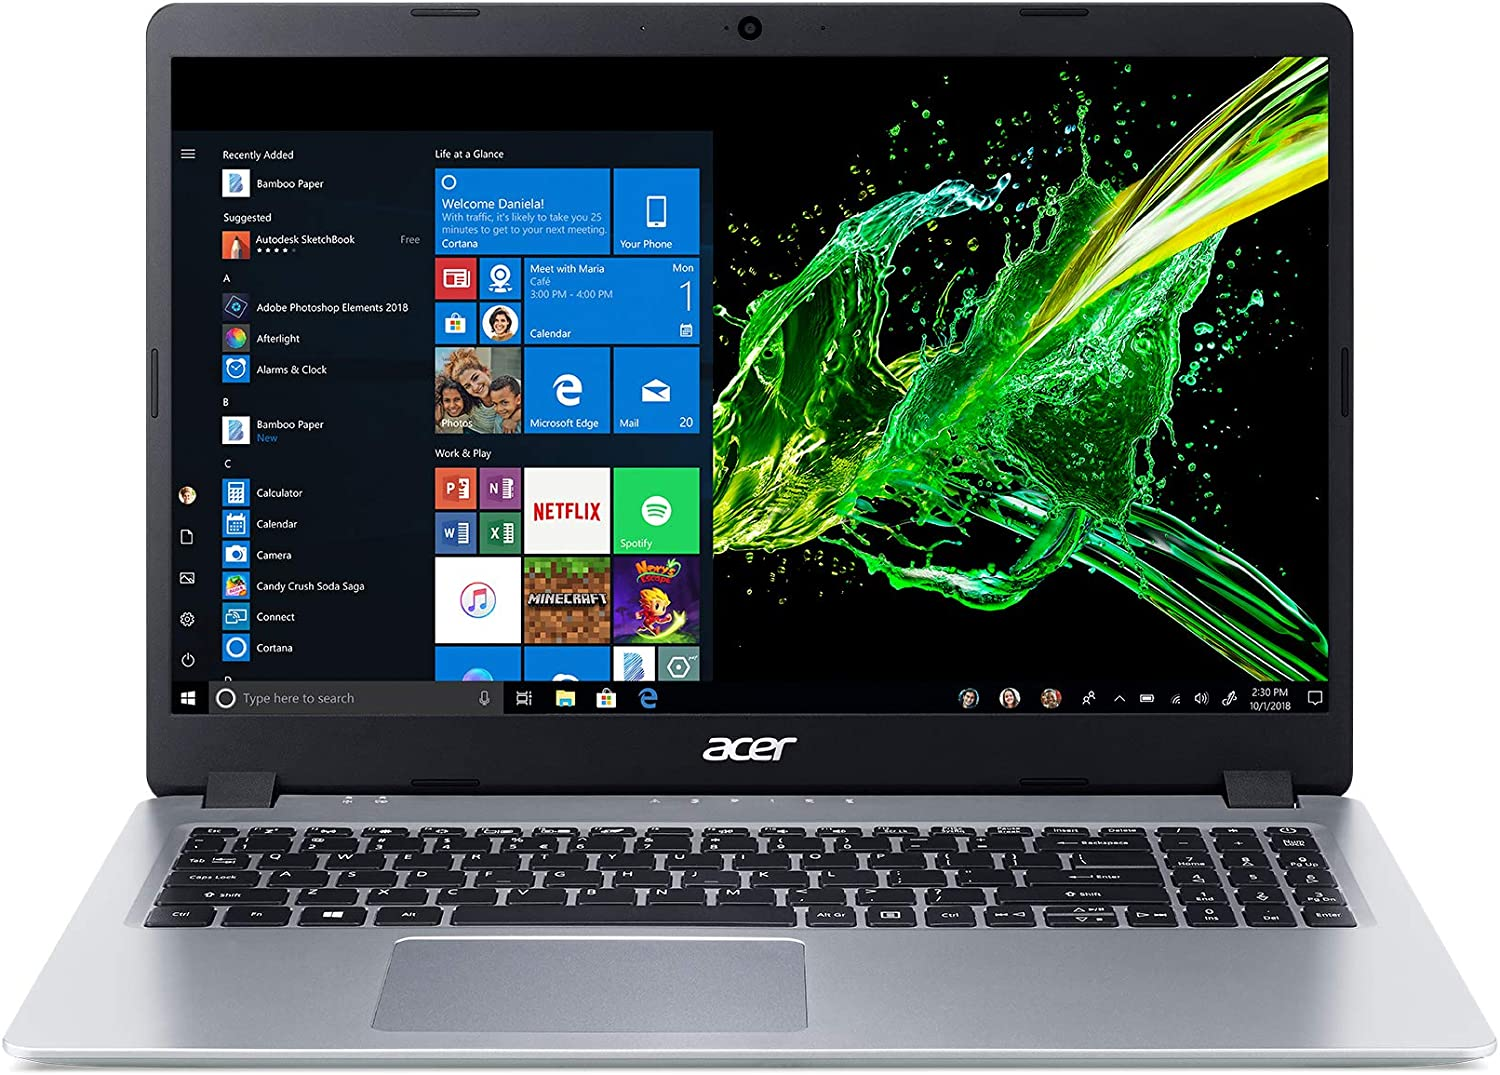 10% off on Acer Aspire 5 (A515-43-R19L)